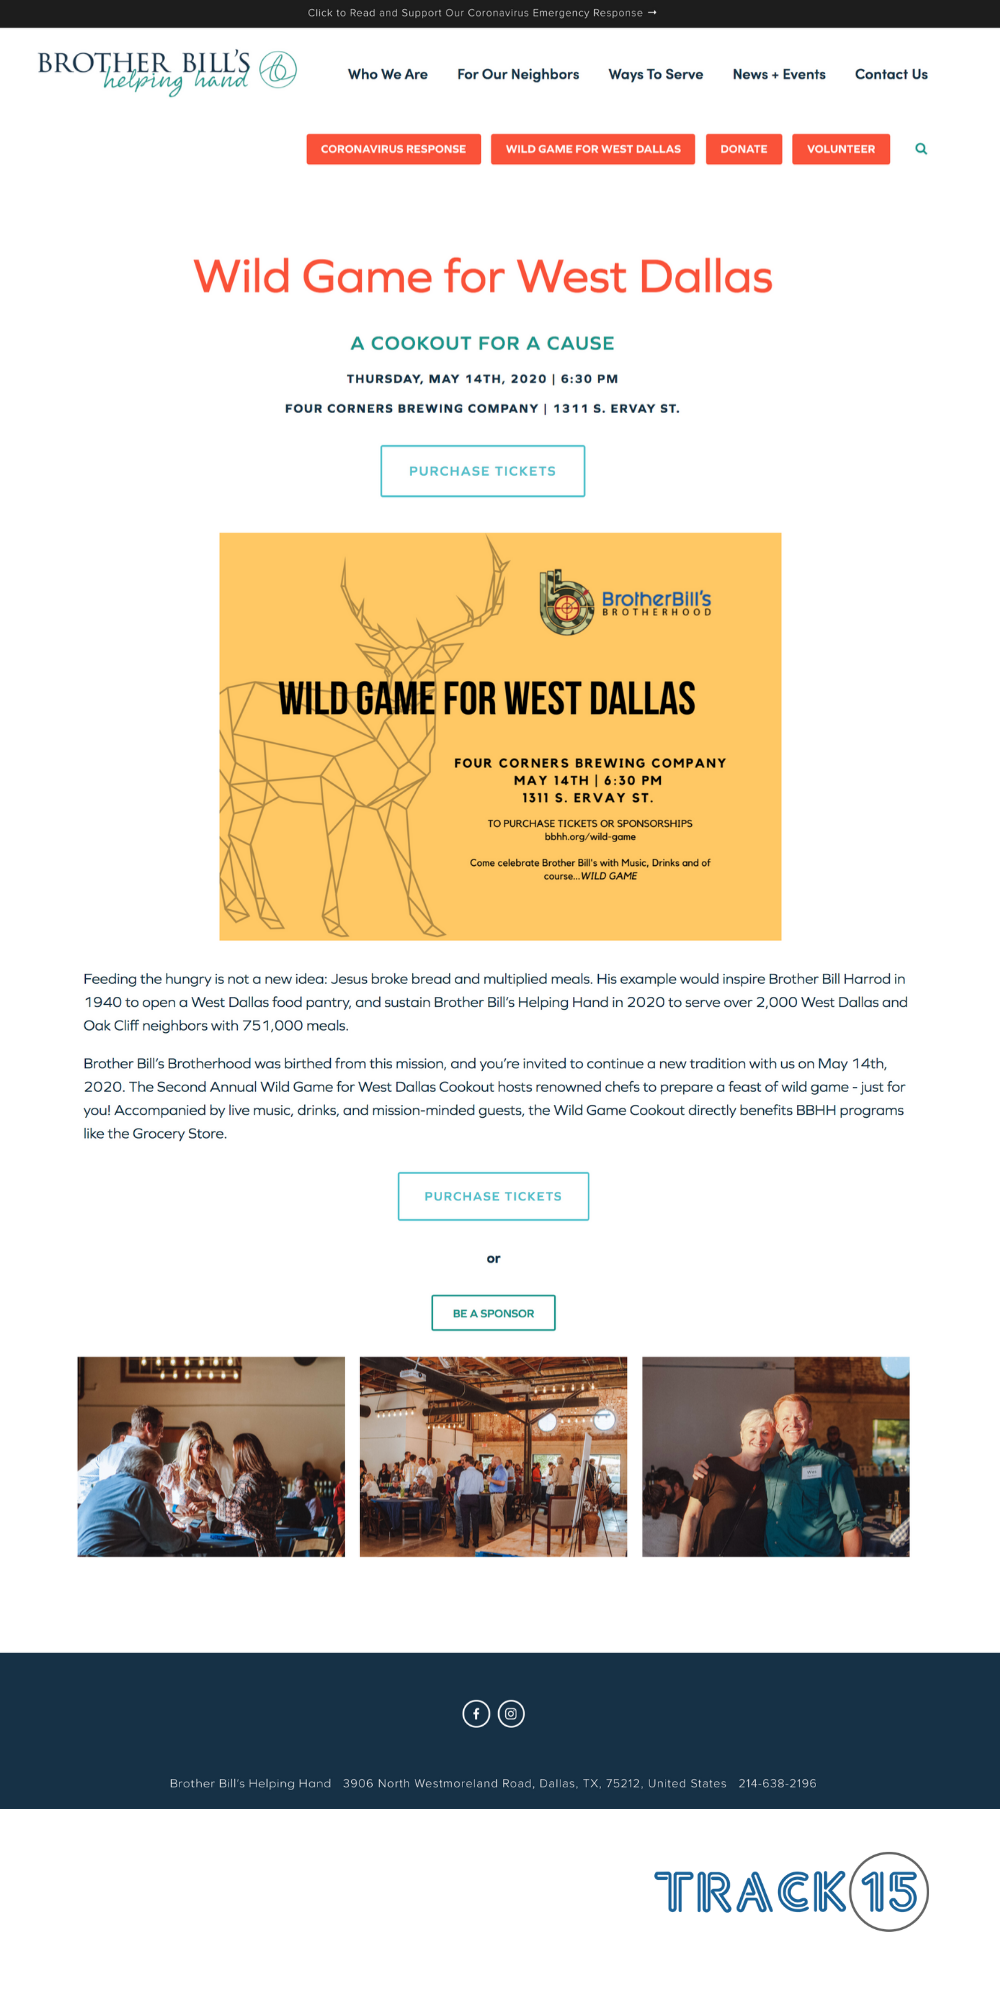 Brother Bill's Helping Hand Landing Page: Wild Game Event